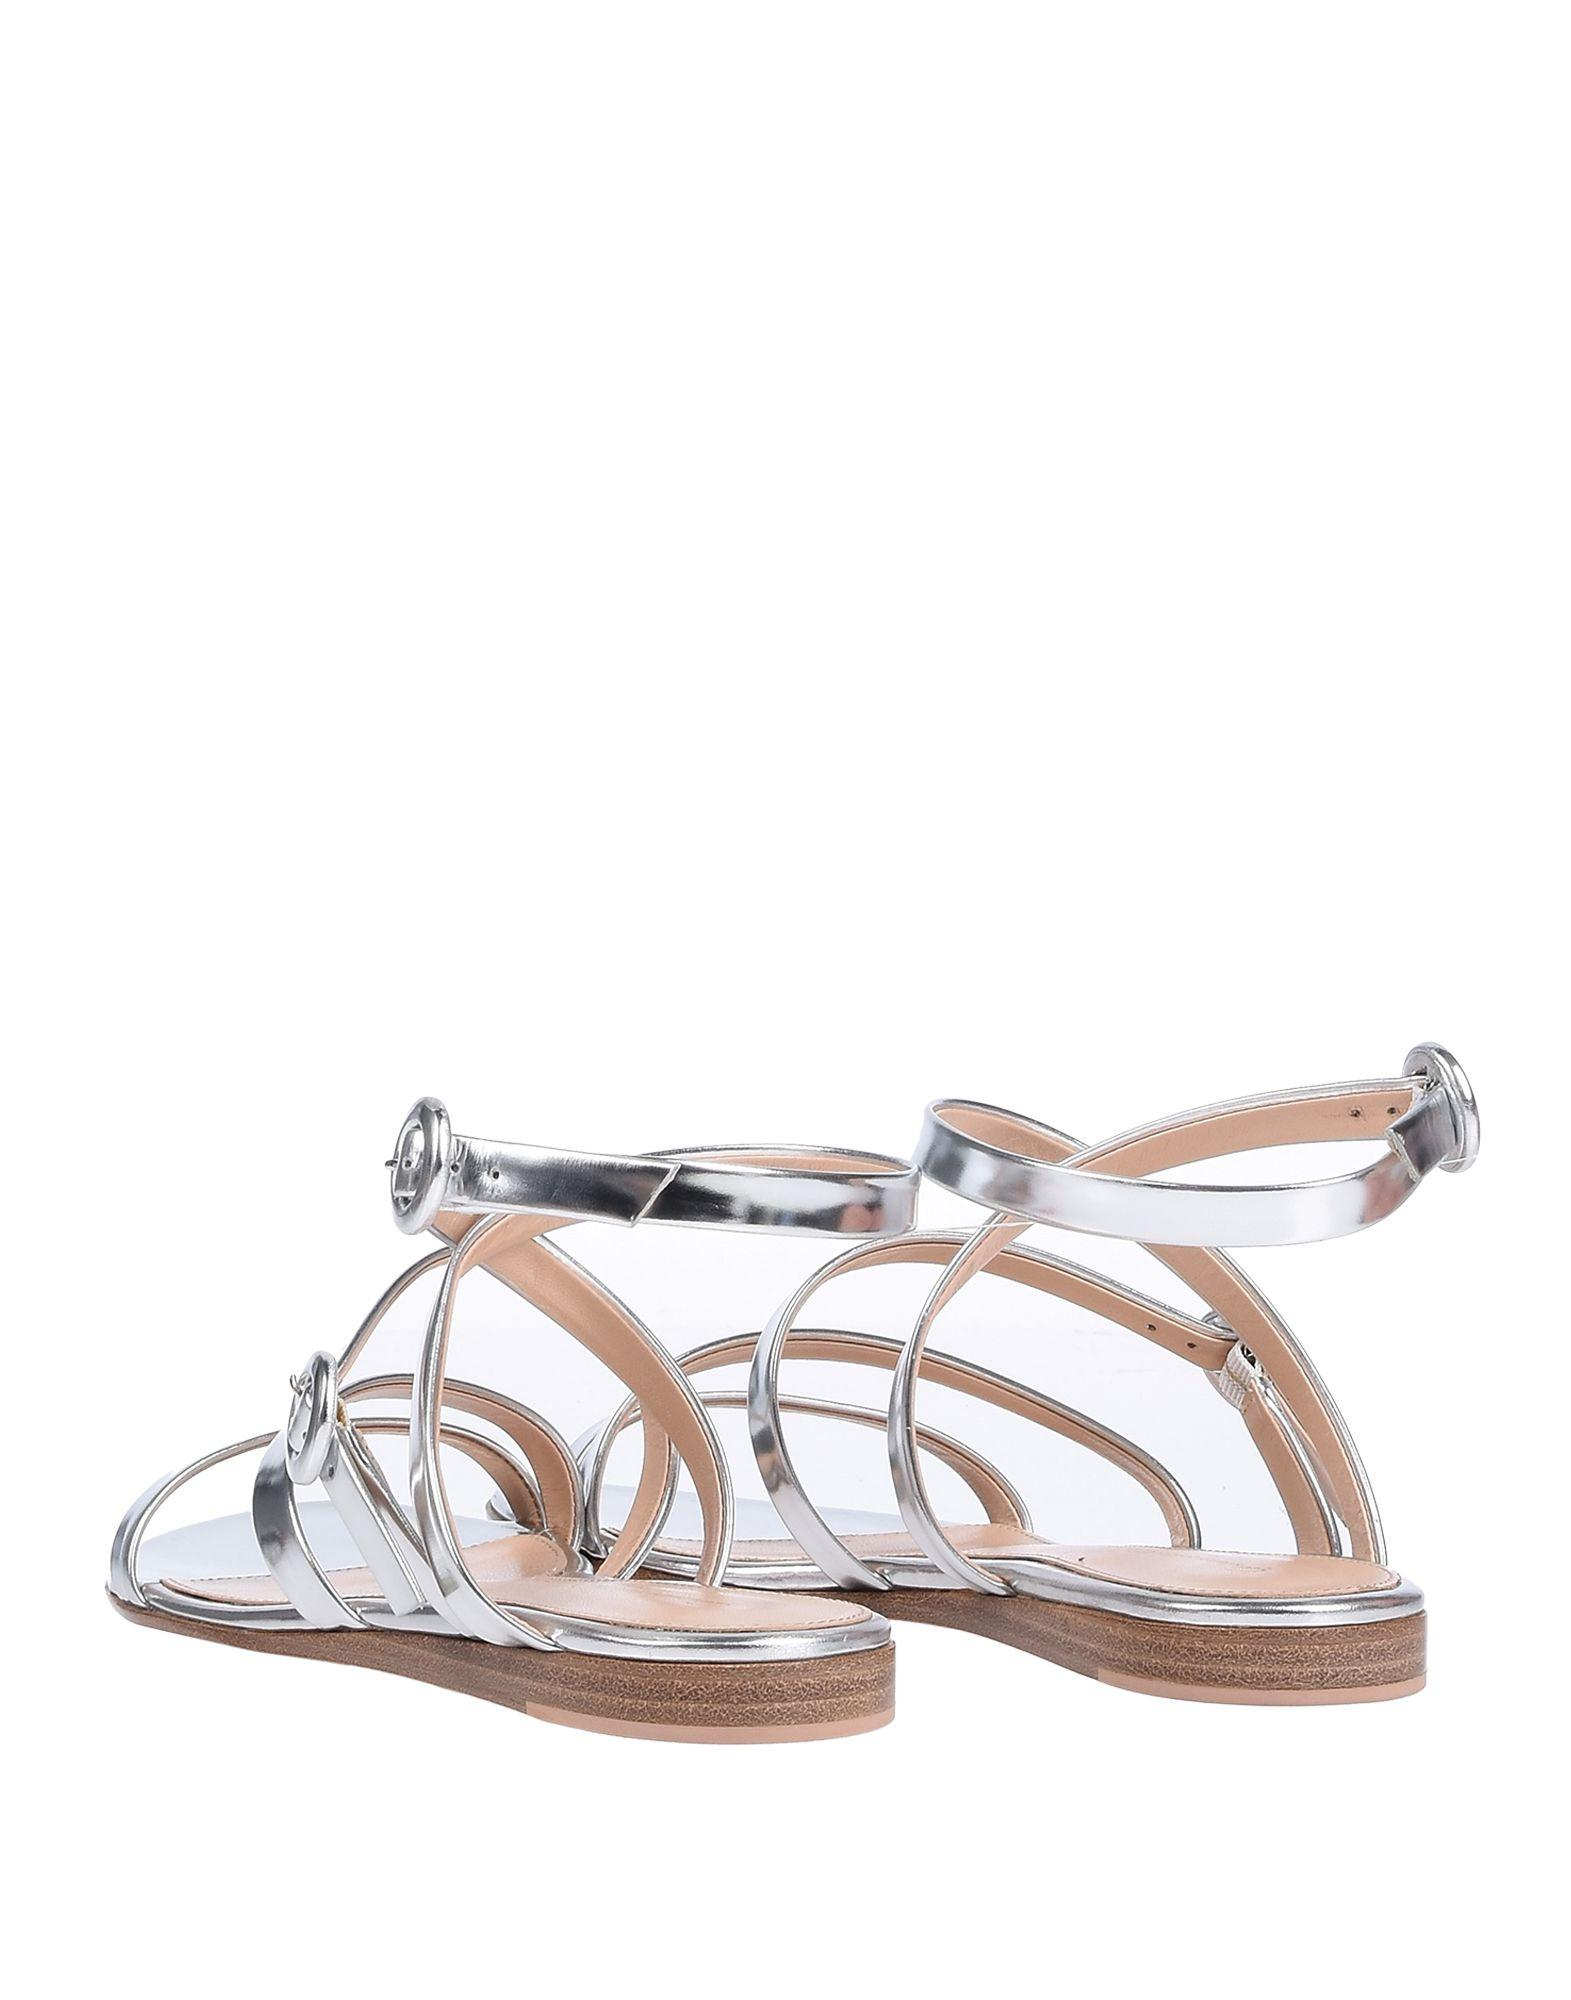 a25f78496 Lyst - Gianvito Rossi Sandals in Metallic - Save 72%